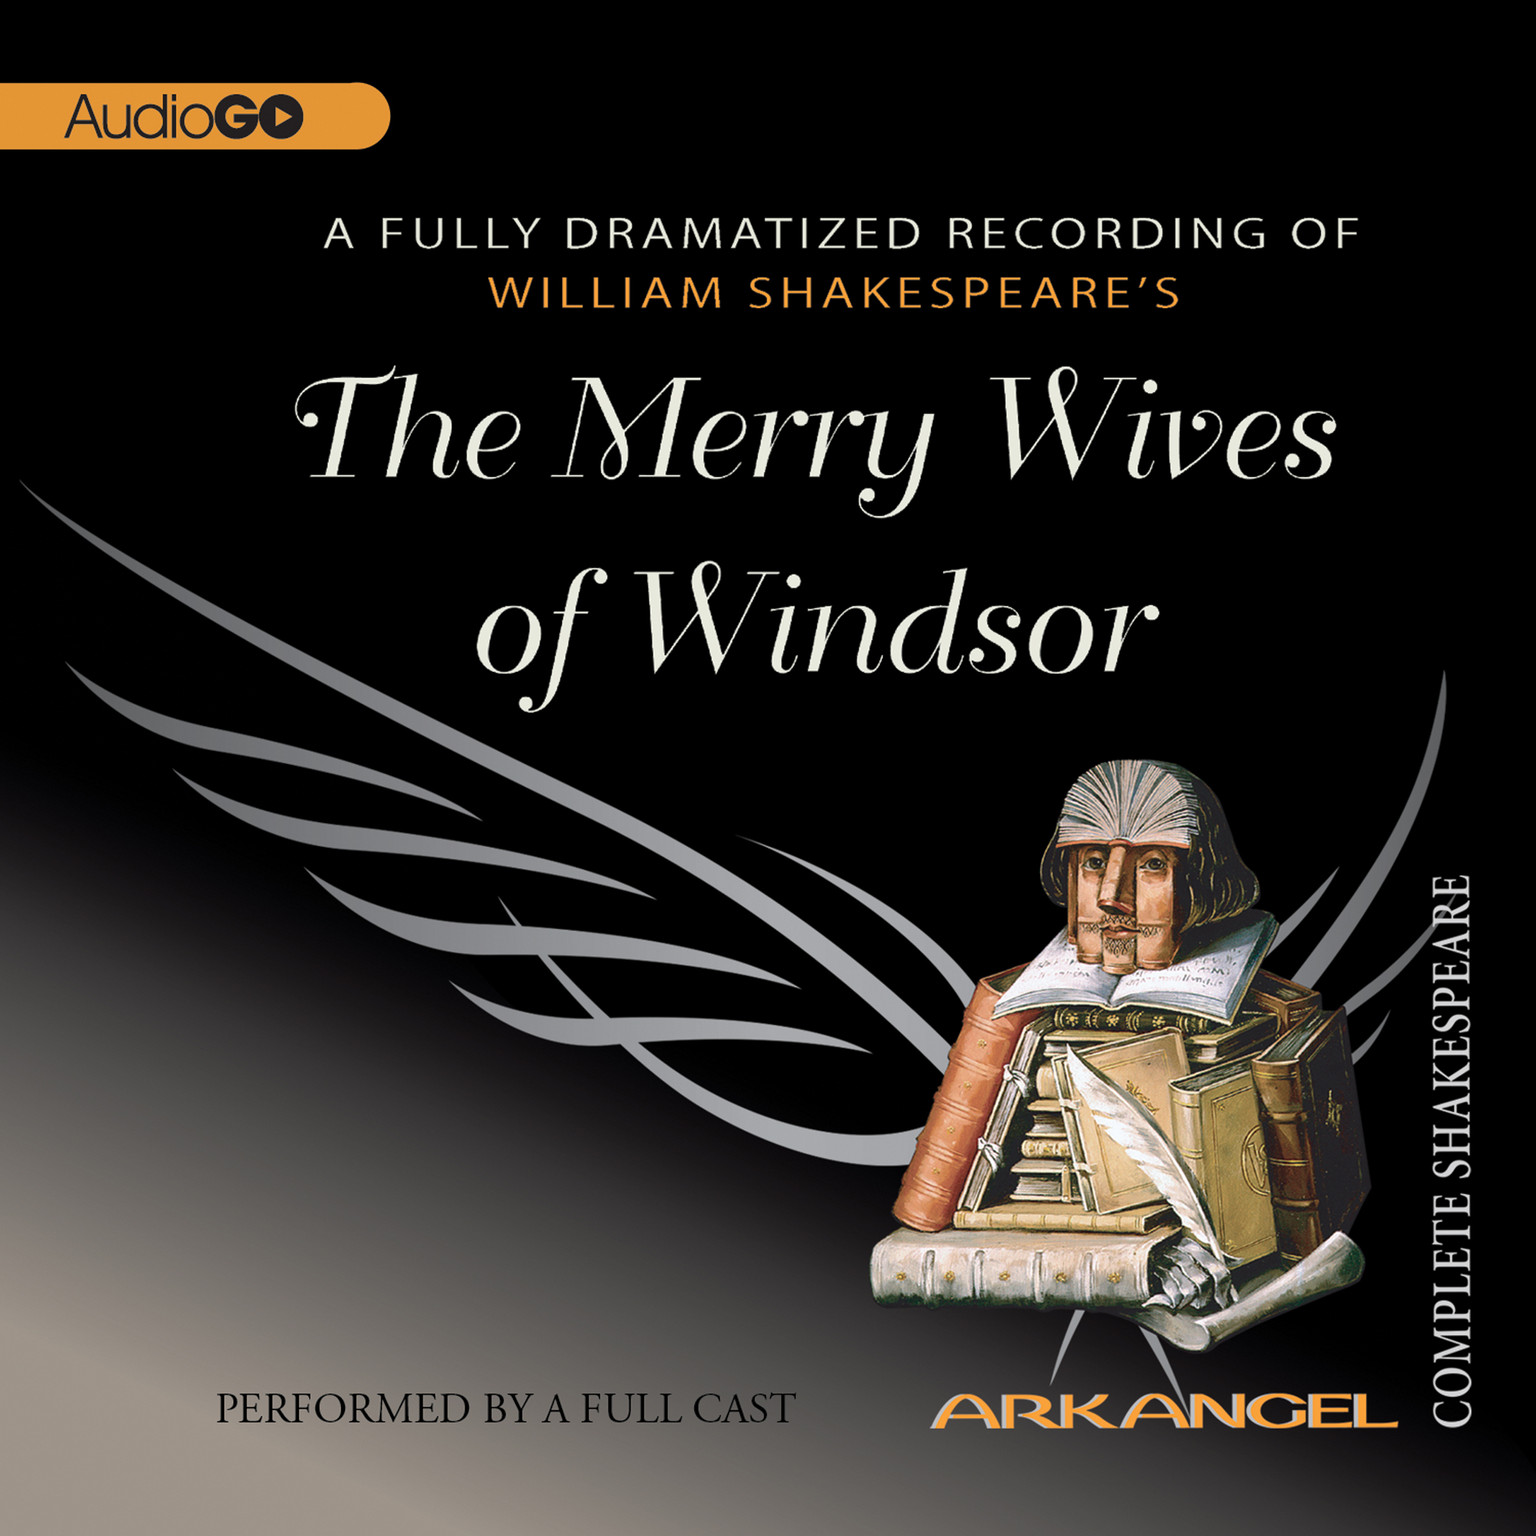 an analysis of influential characters in the comedy the merry wives of windsor by william shakespear